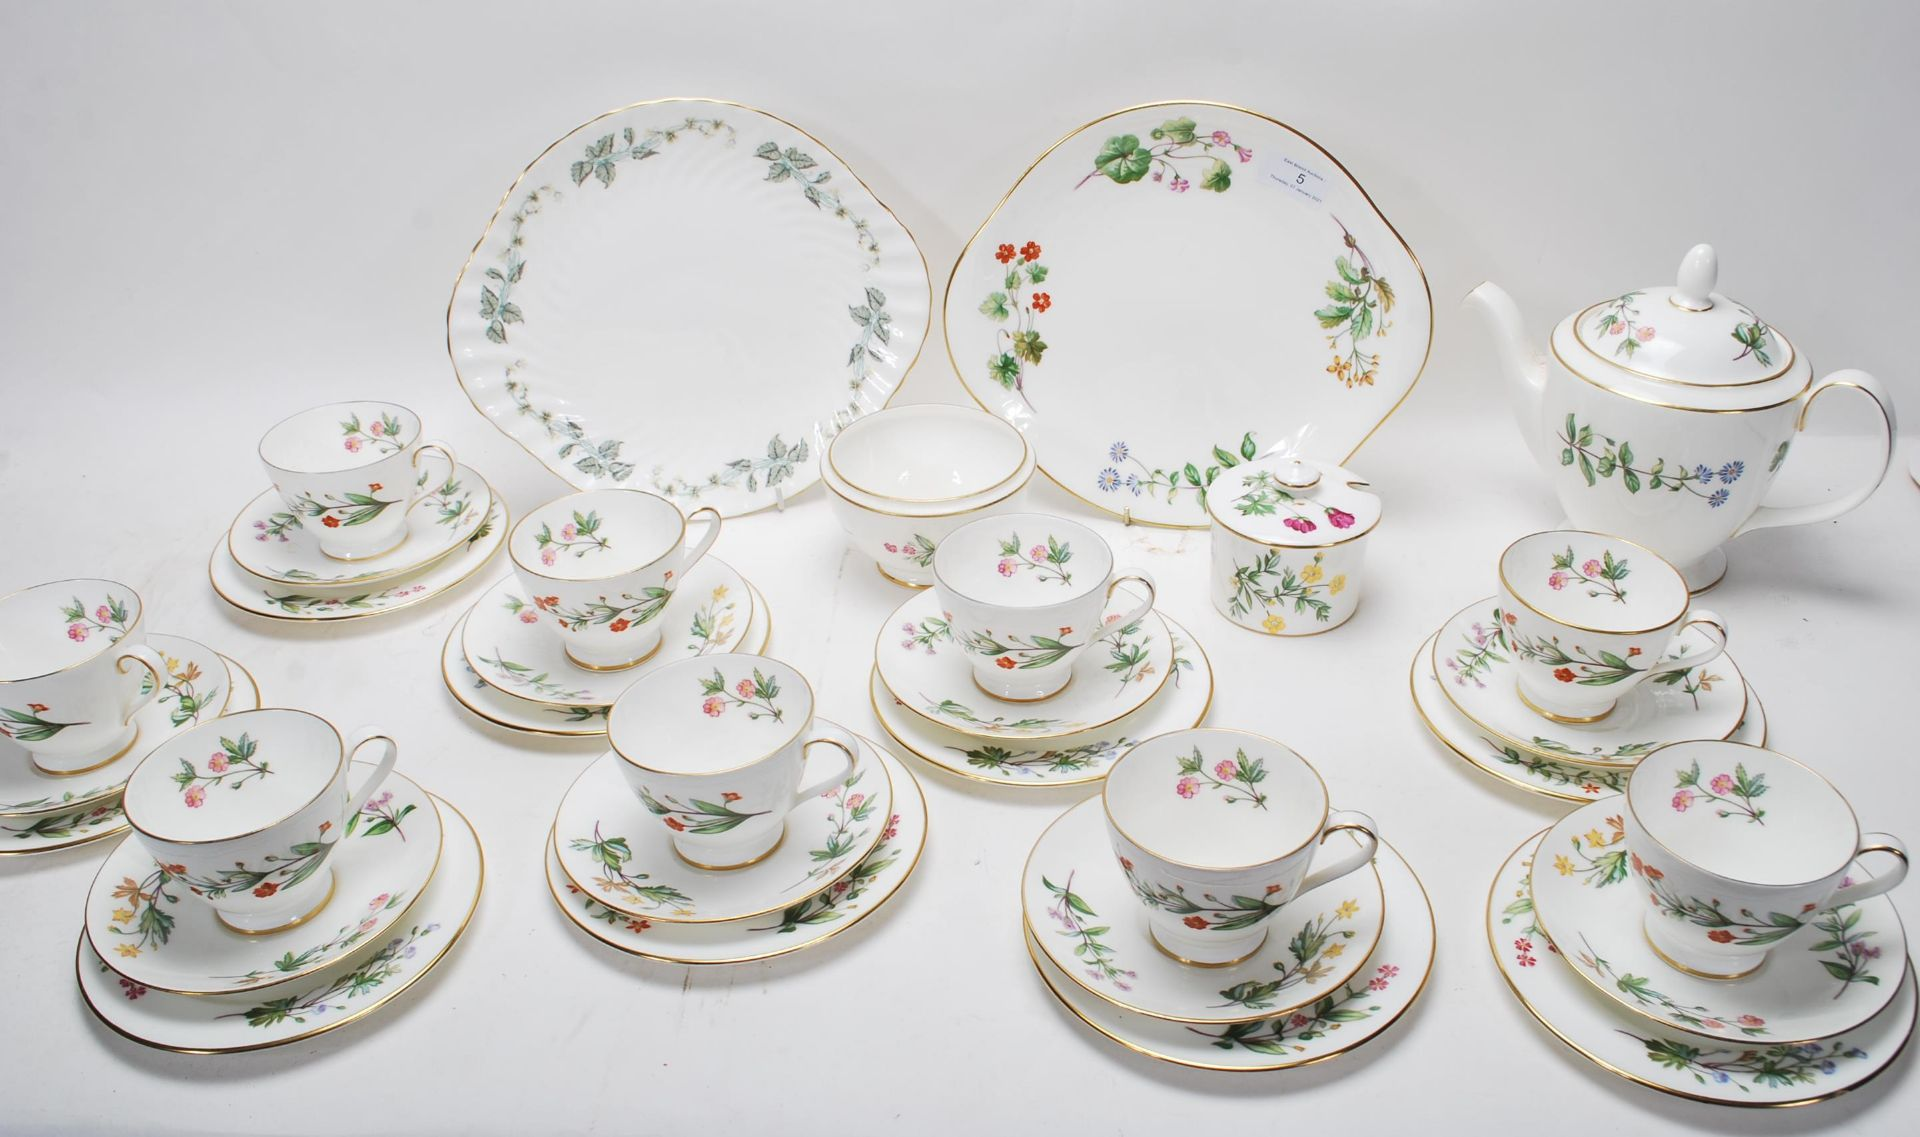 MINTON MEADOW PATTERN BONE CHINA TEA SERVICE - Image 2 of 12